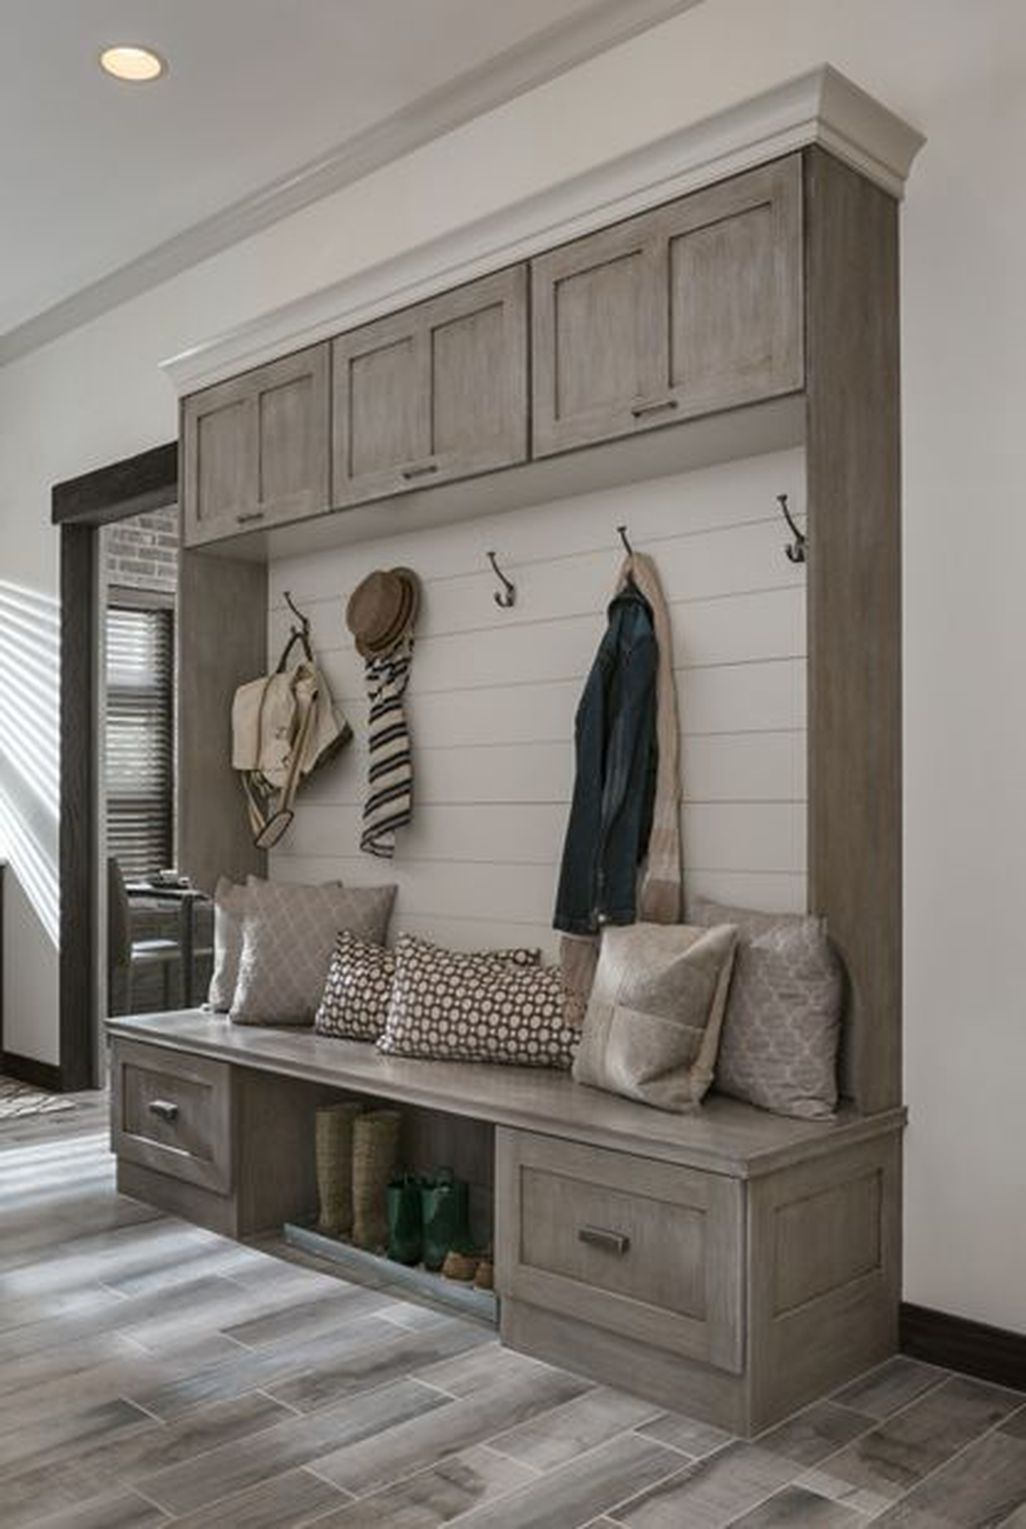 Awesome 47 Adorable Rustic Mudroom Bench Decorating Ideas On A Budget More At Https